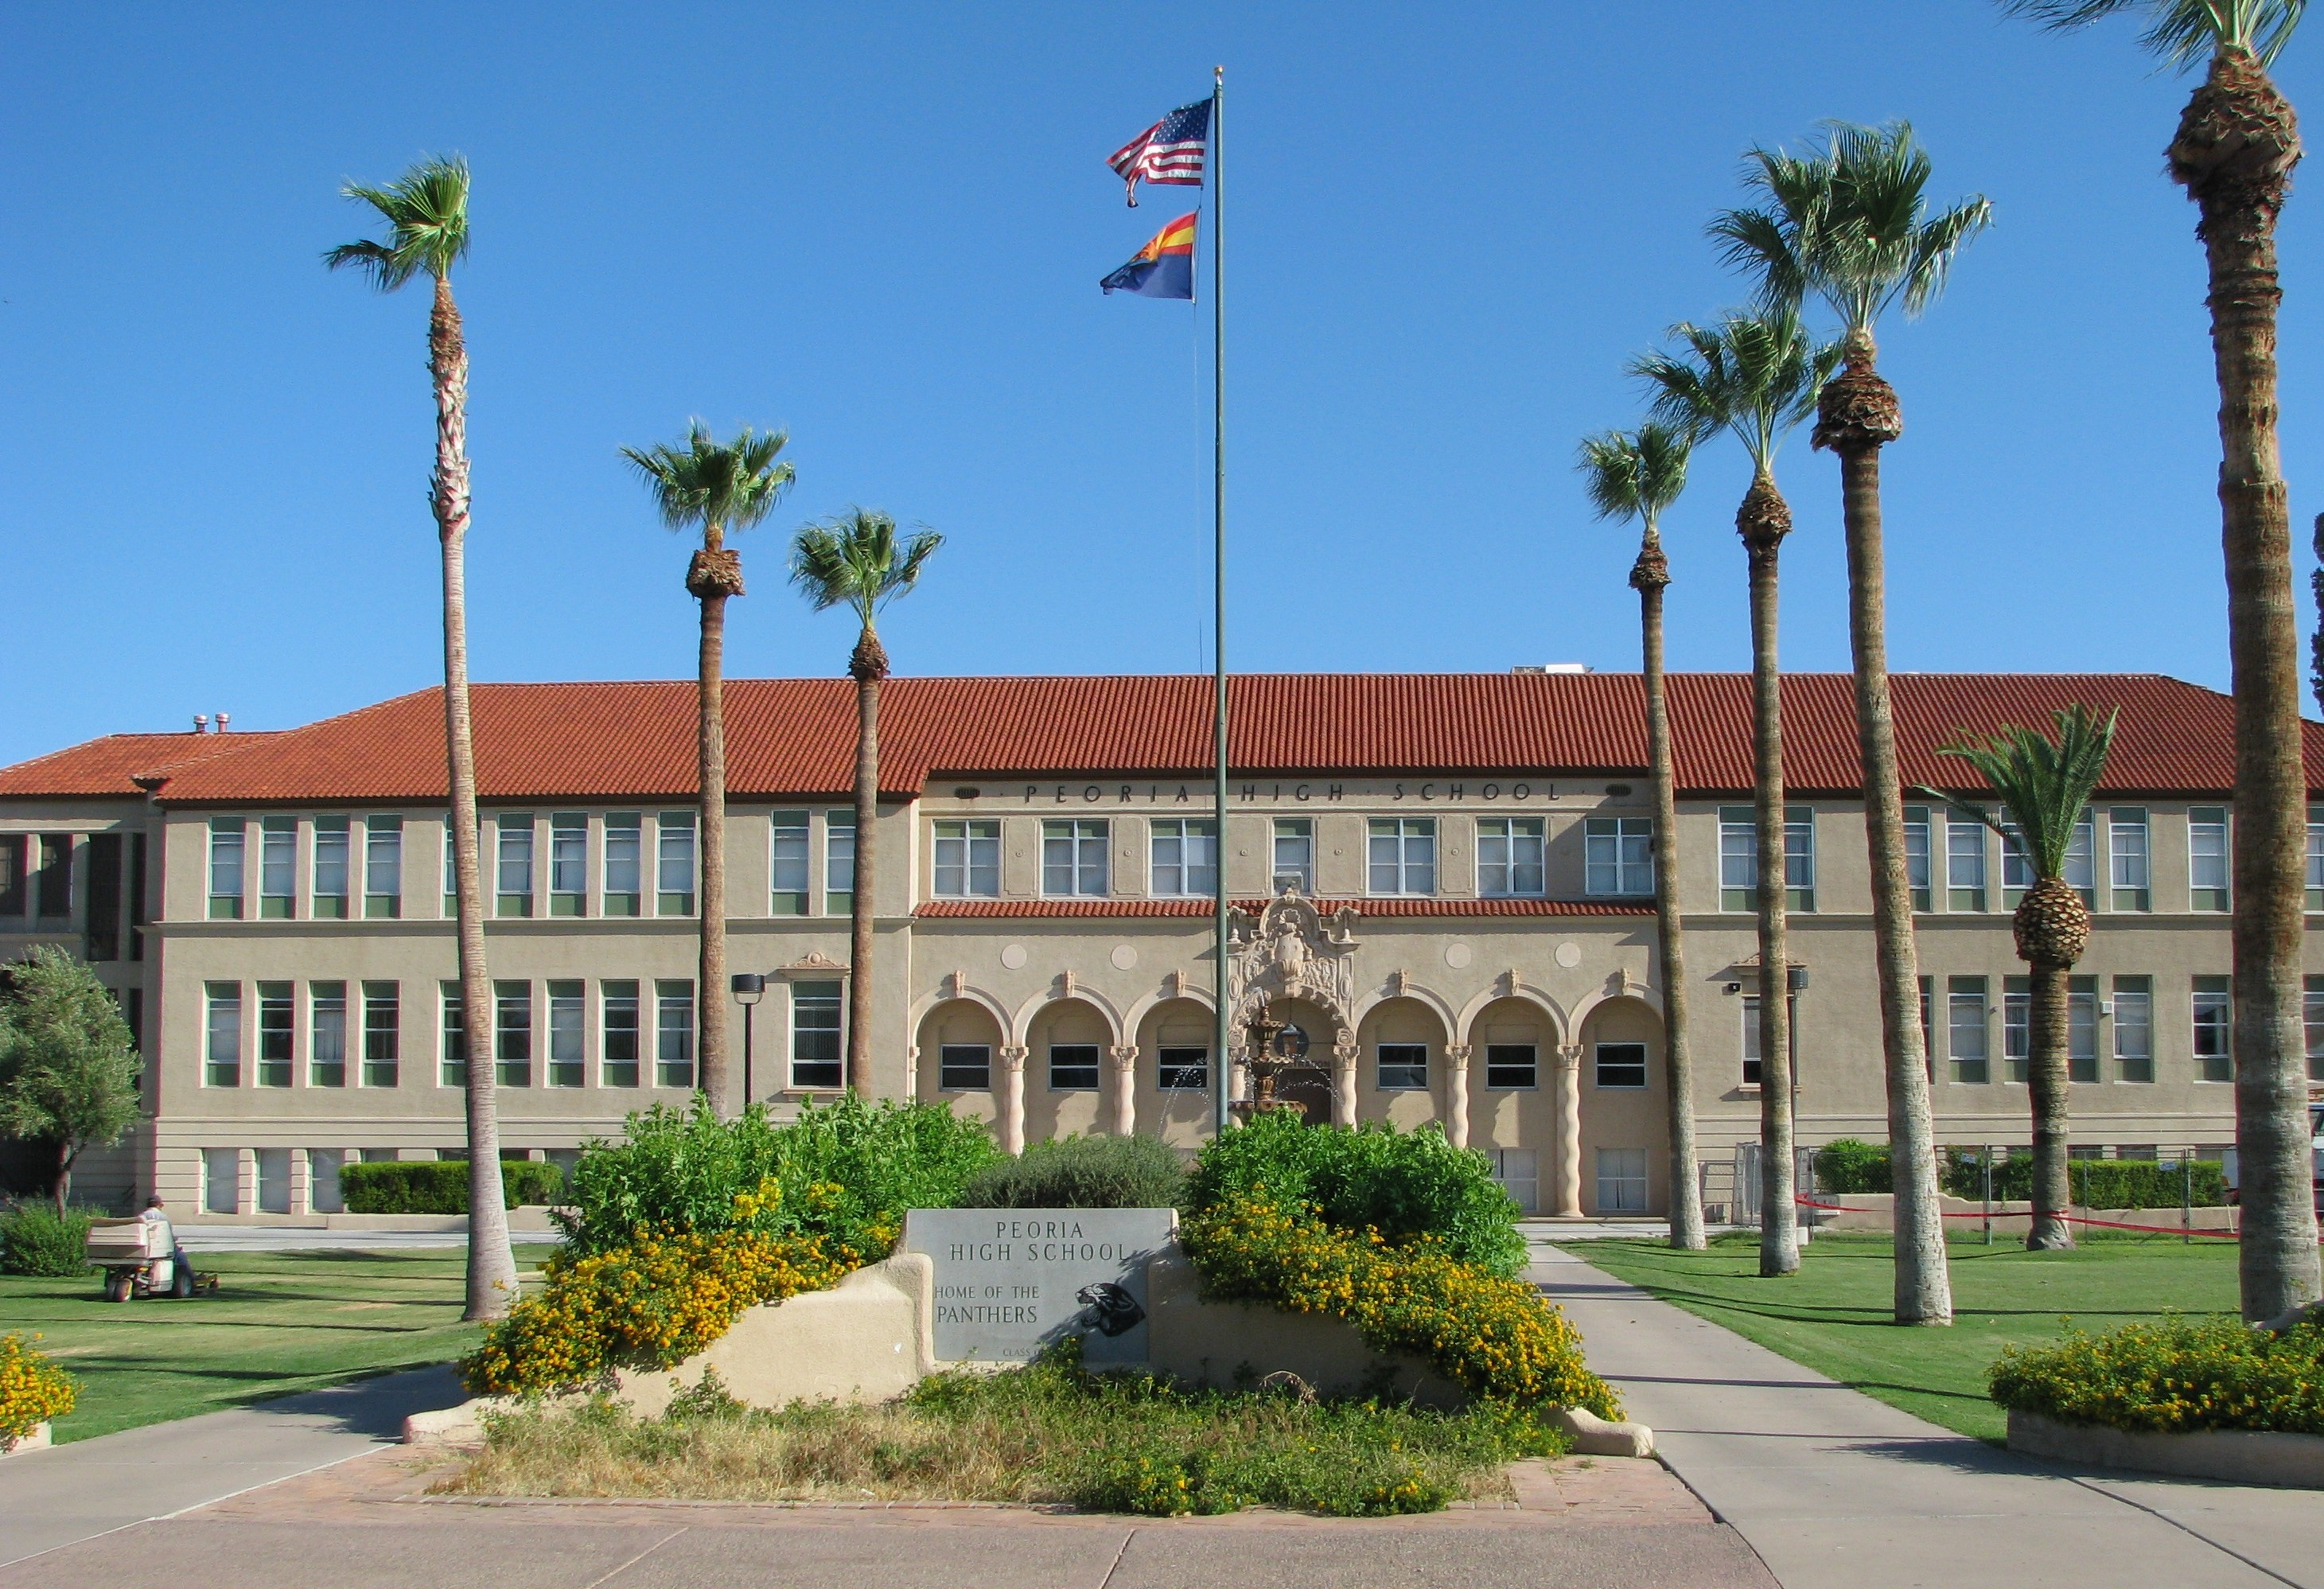 The Old Main High School Building in Peoria, Arizona